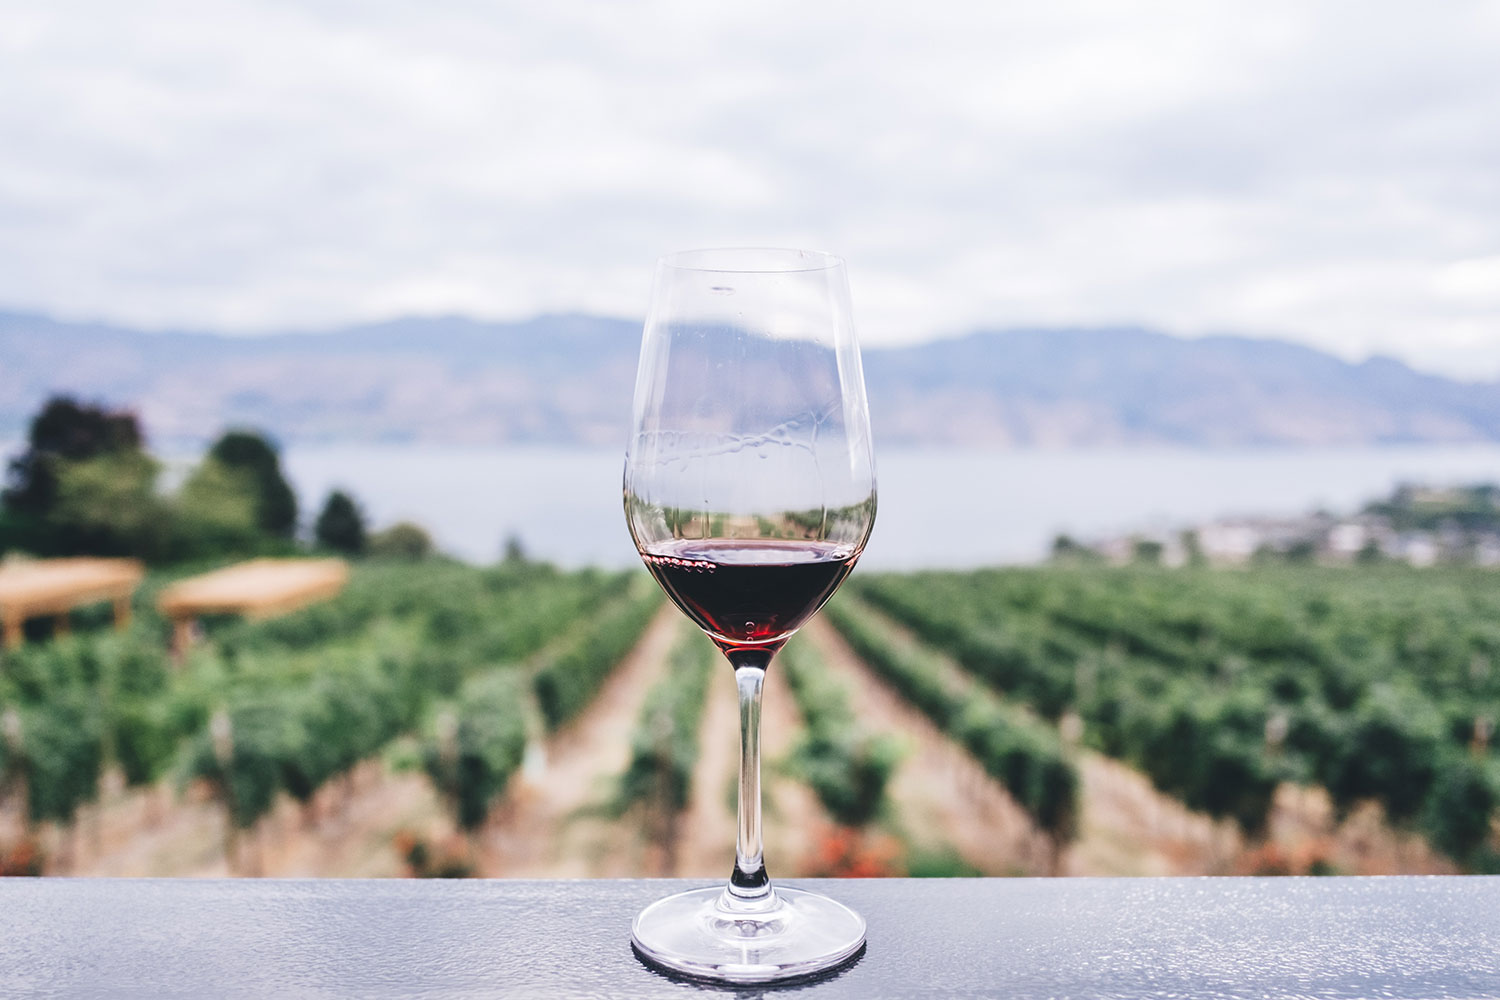 wine-glass-in-vineyard2.jpg